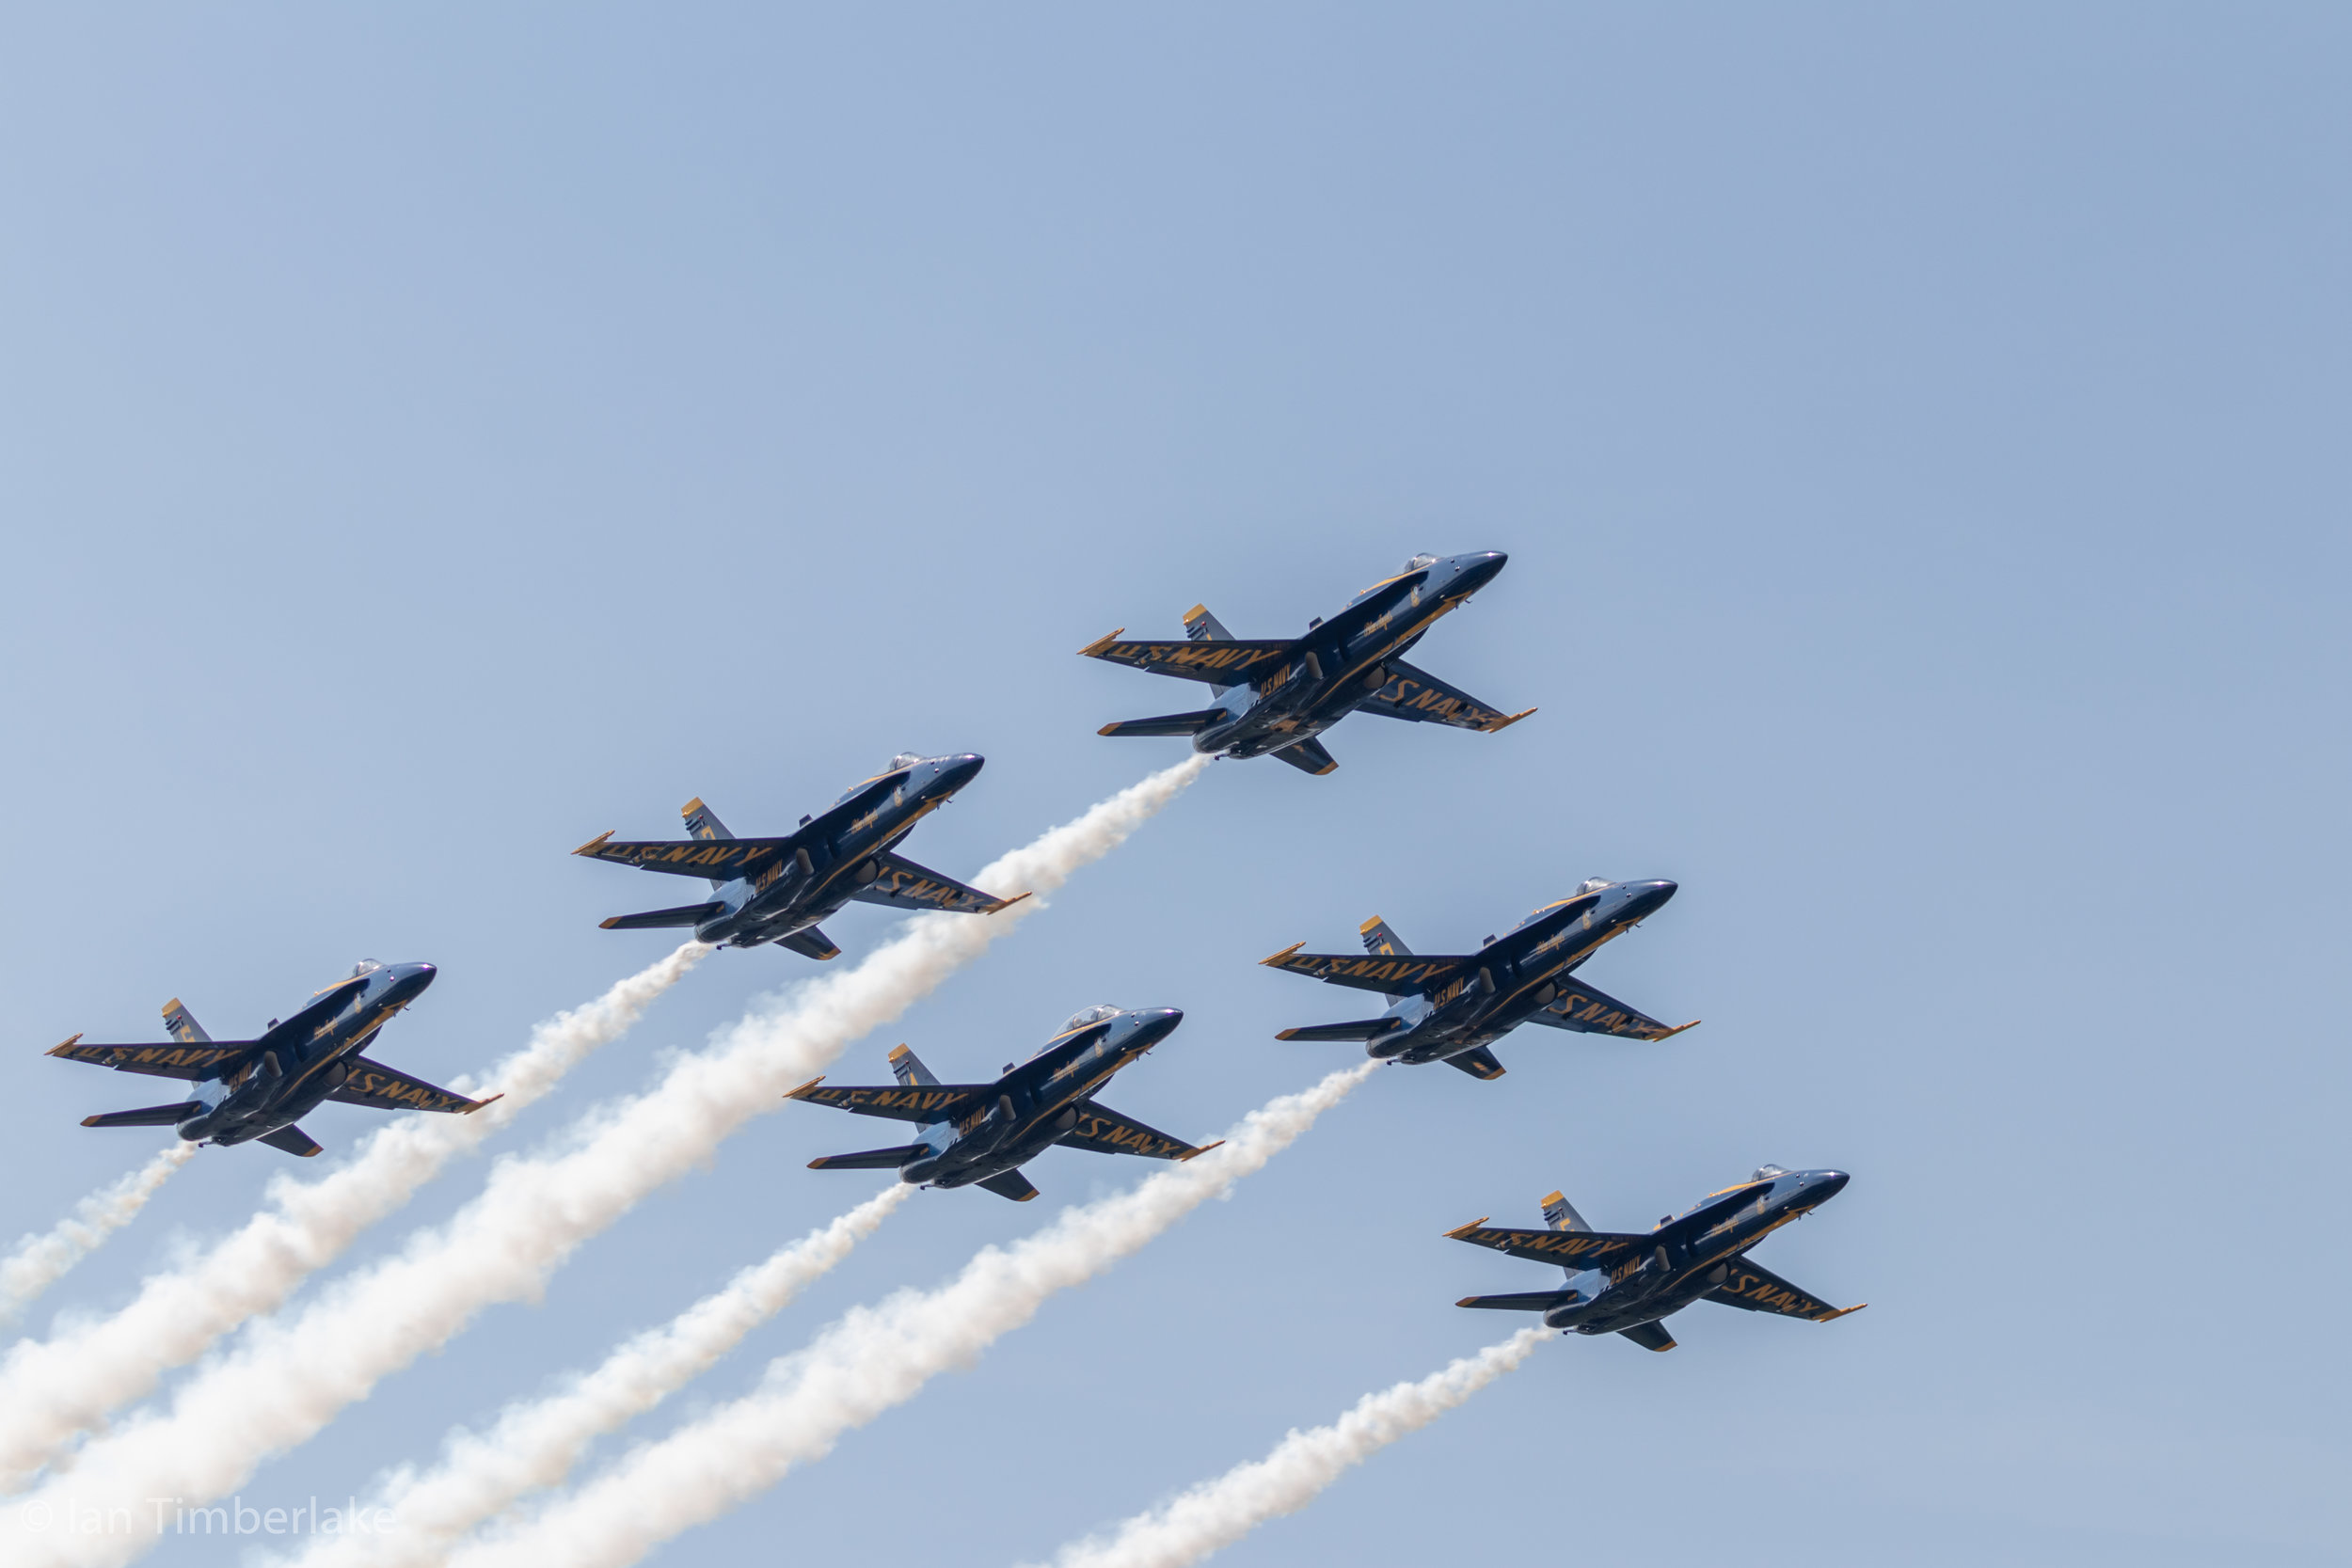 United States Navy Blue Angels in delta formation flying over the United States Naval Academy Navy-Marine Corps Memorial Stadium during the graduation and commissioning ceremony. Taken at 100mm, 1/800th sec, f/4.5, ISO 100.